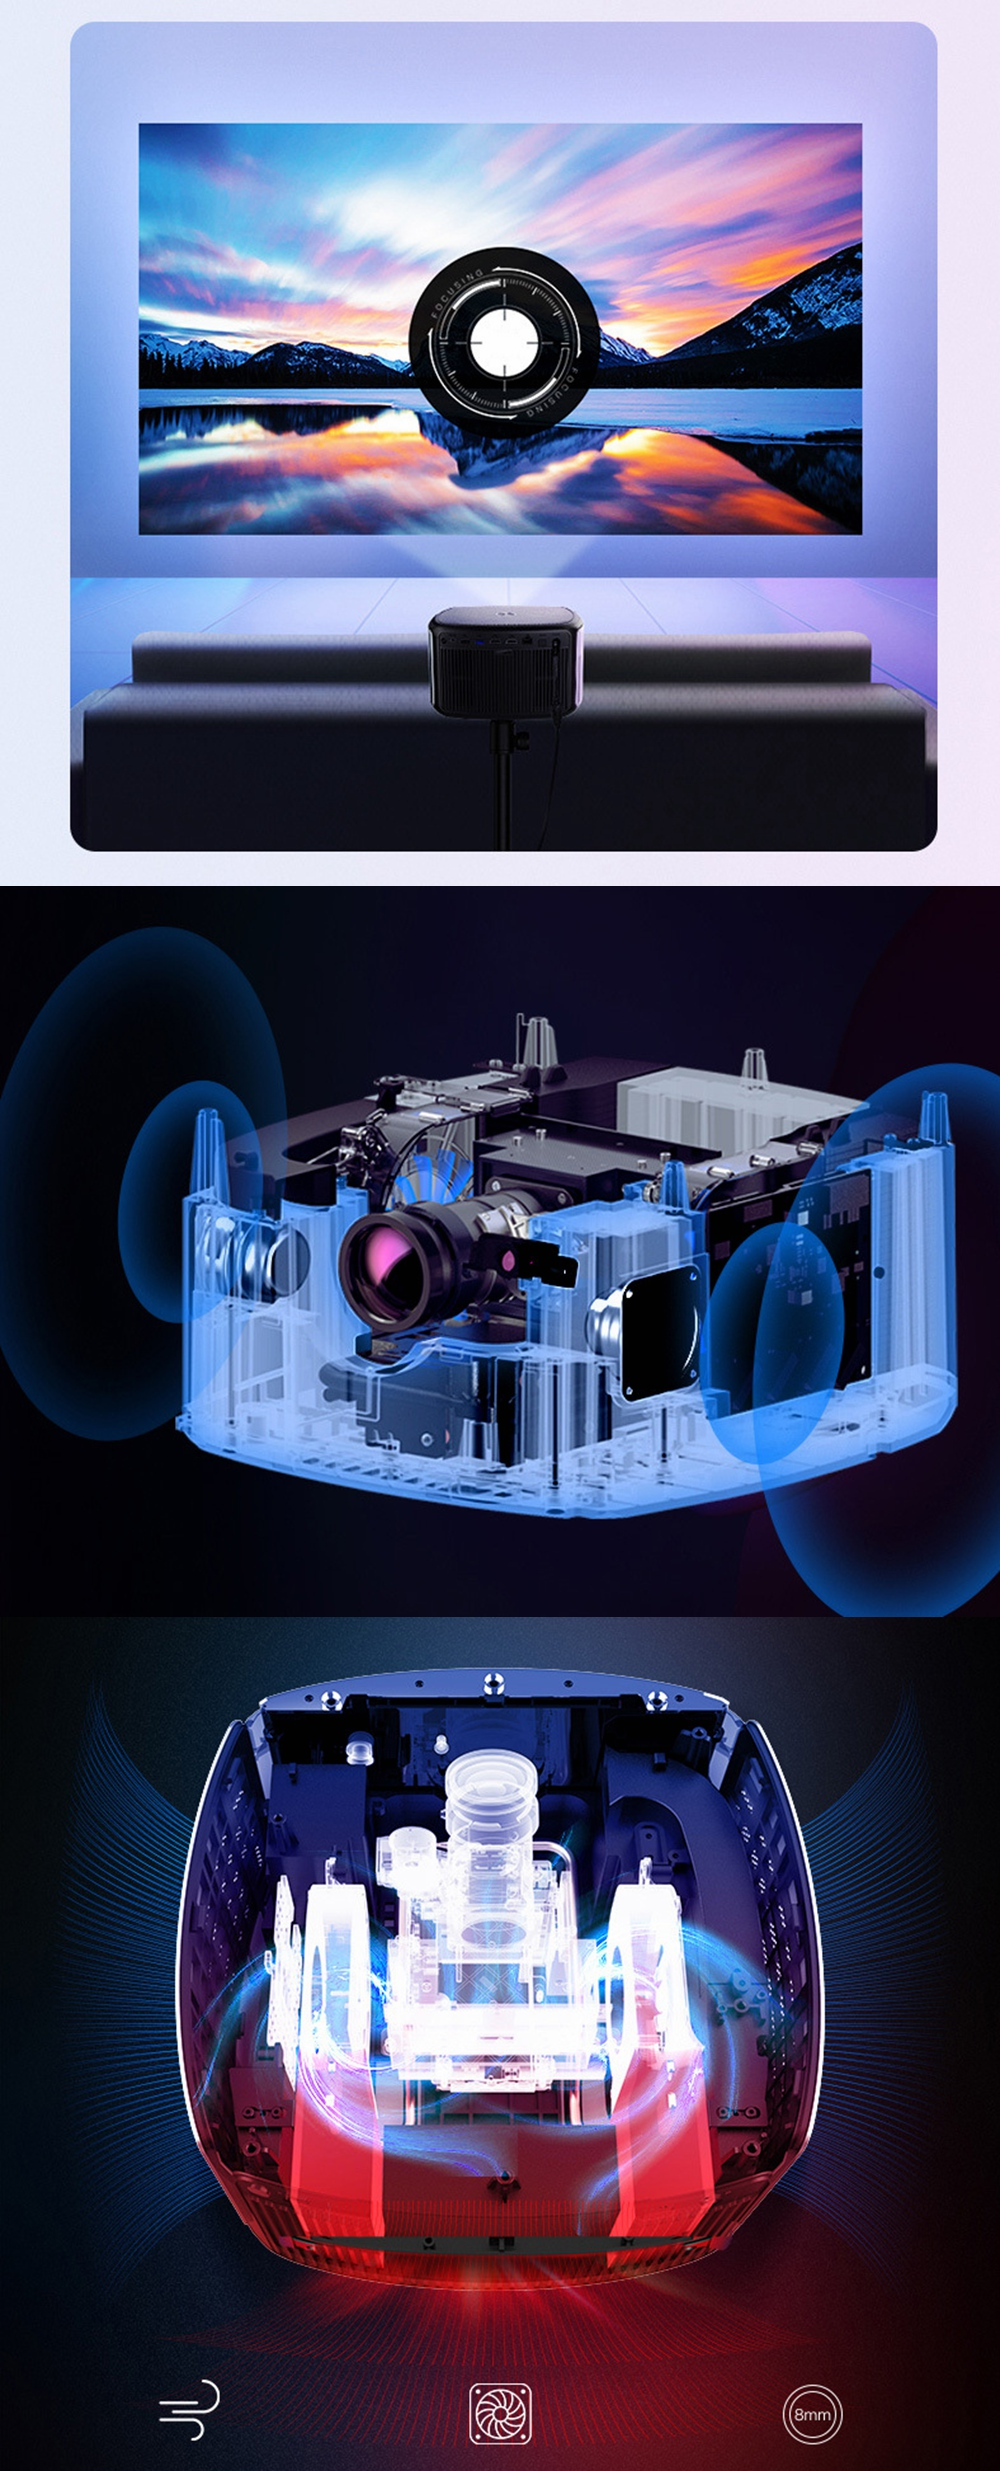 JmGO X3 DLP Projector Android 2G+16G 1500 ANSI Lumens 3840*2160 Native Resolution 4K LED Support 3D Home Theater Projector-Chinese Version